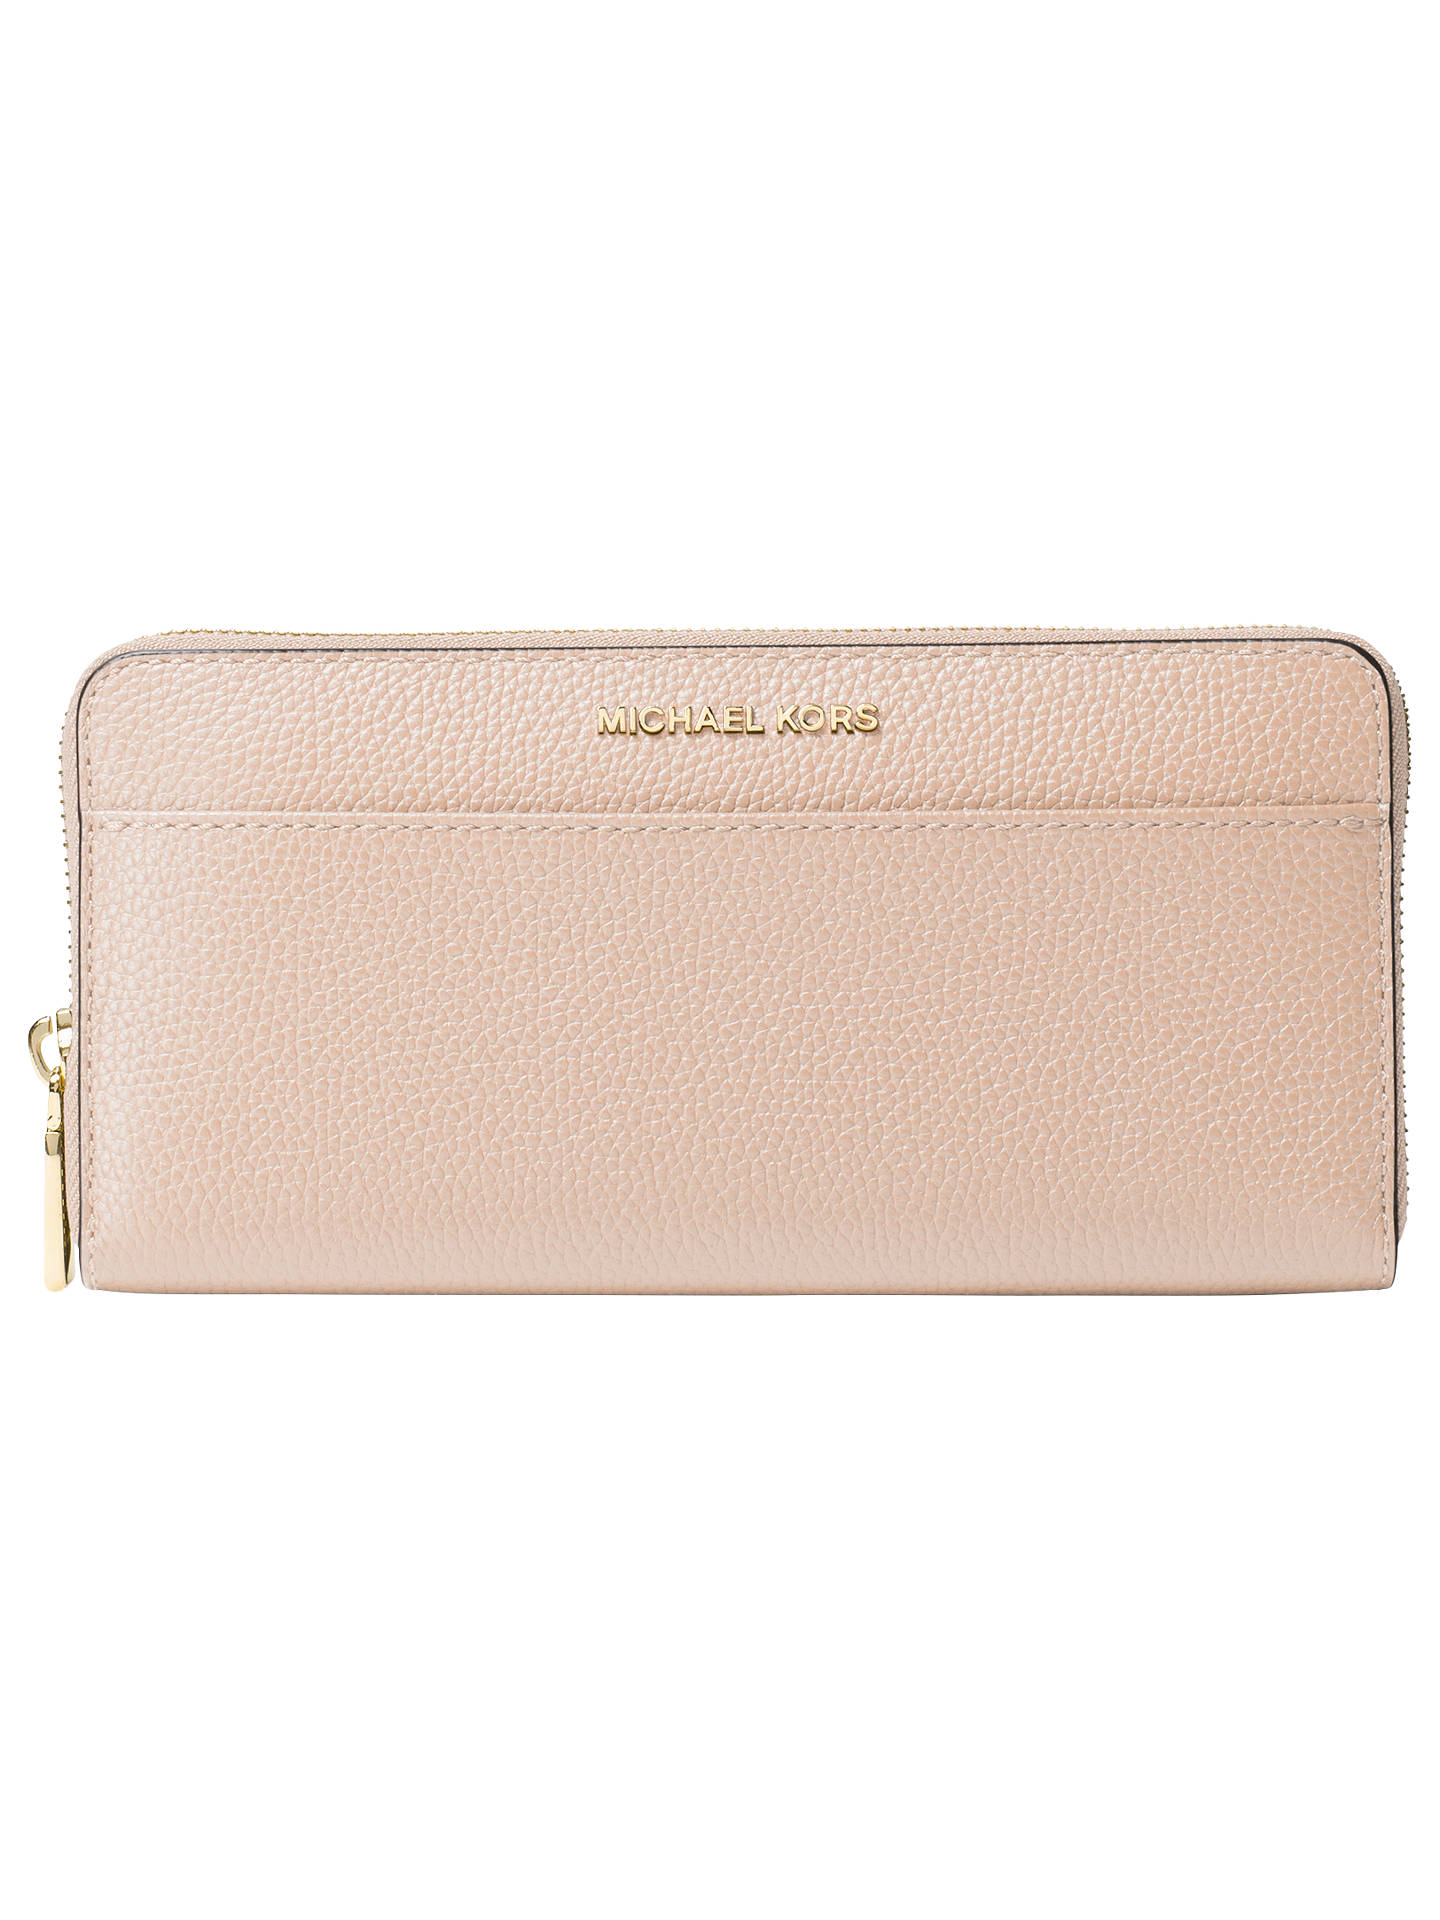 a013f520e6b4 Buy MICHAEL Michael Kors Money Pieces Leather Continental Purse, Soft Pink  Online at johnlewis.